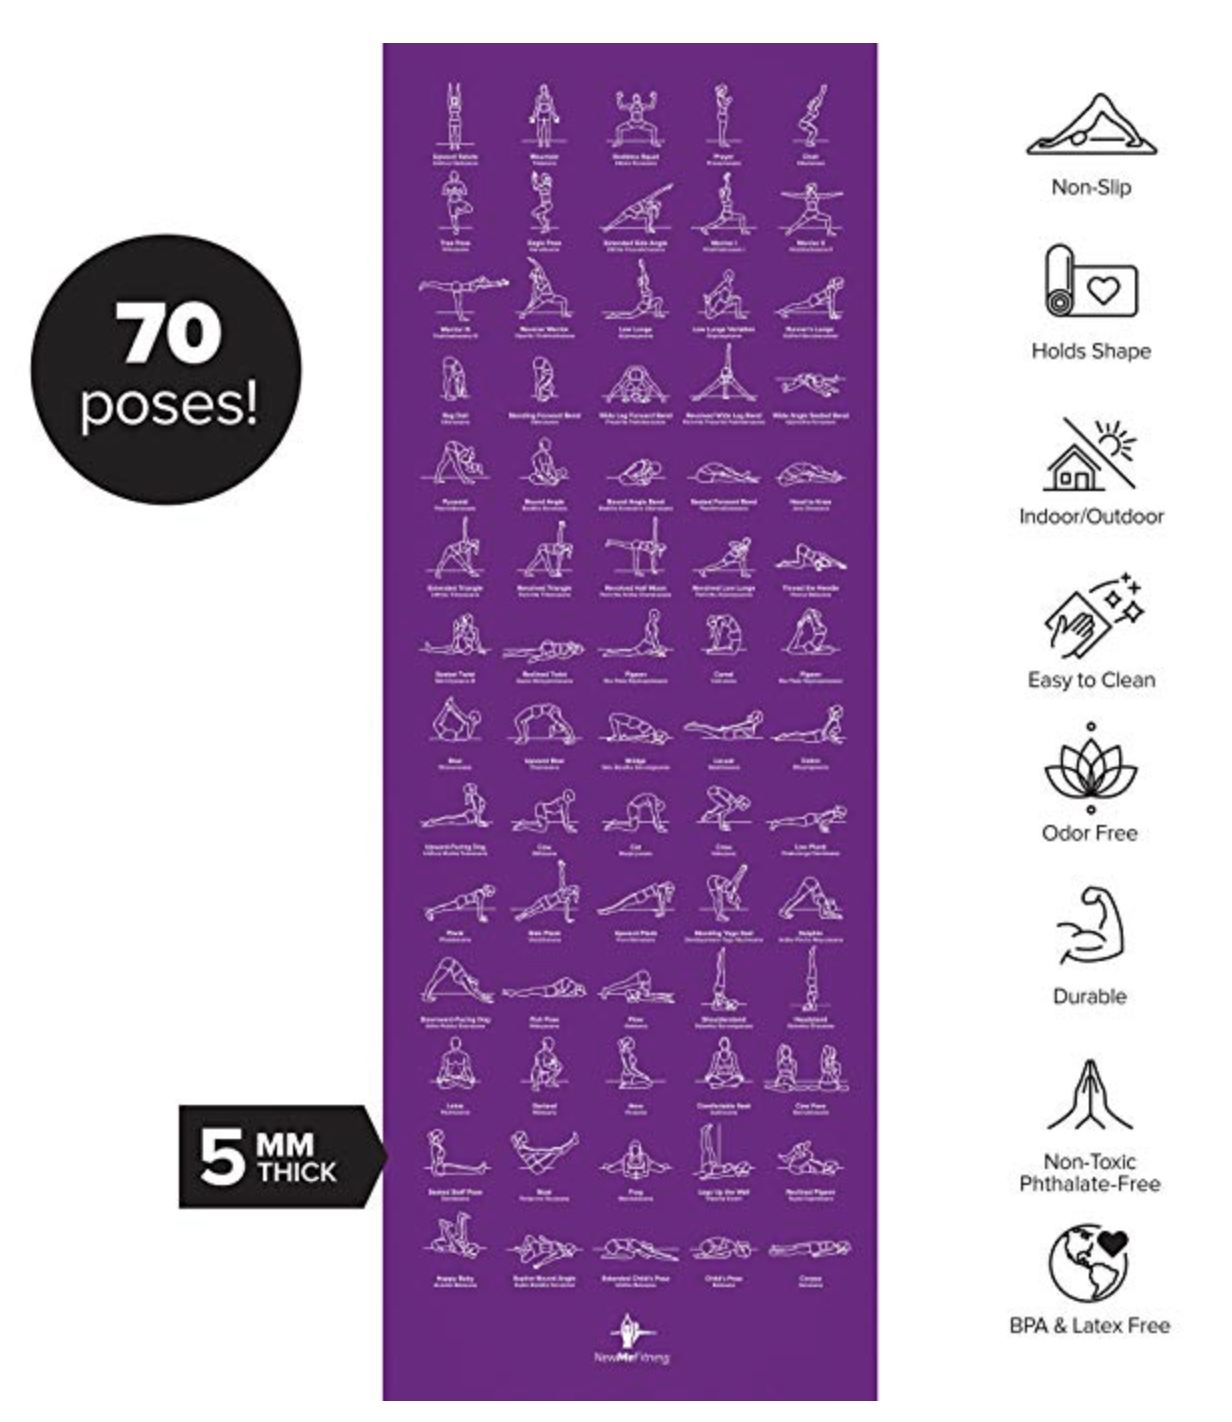 yoga-mat-for-beginners-with-yoga-positions.png